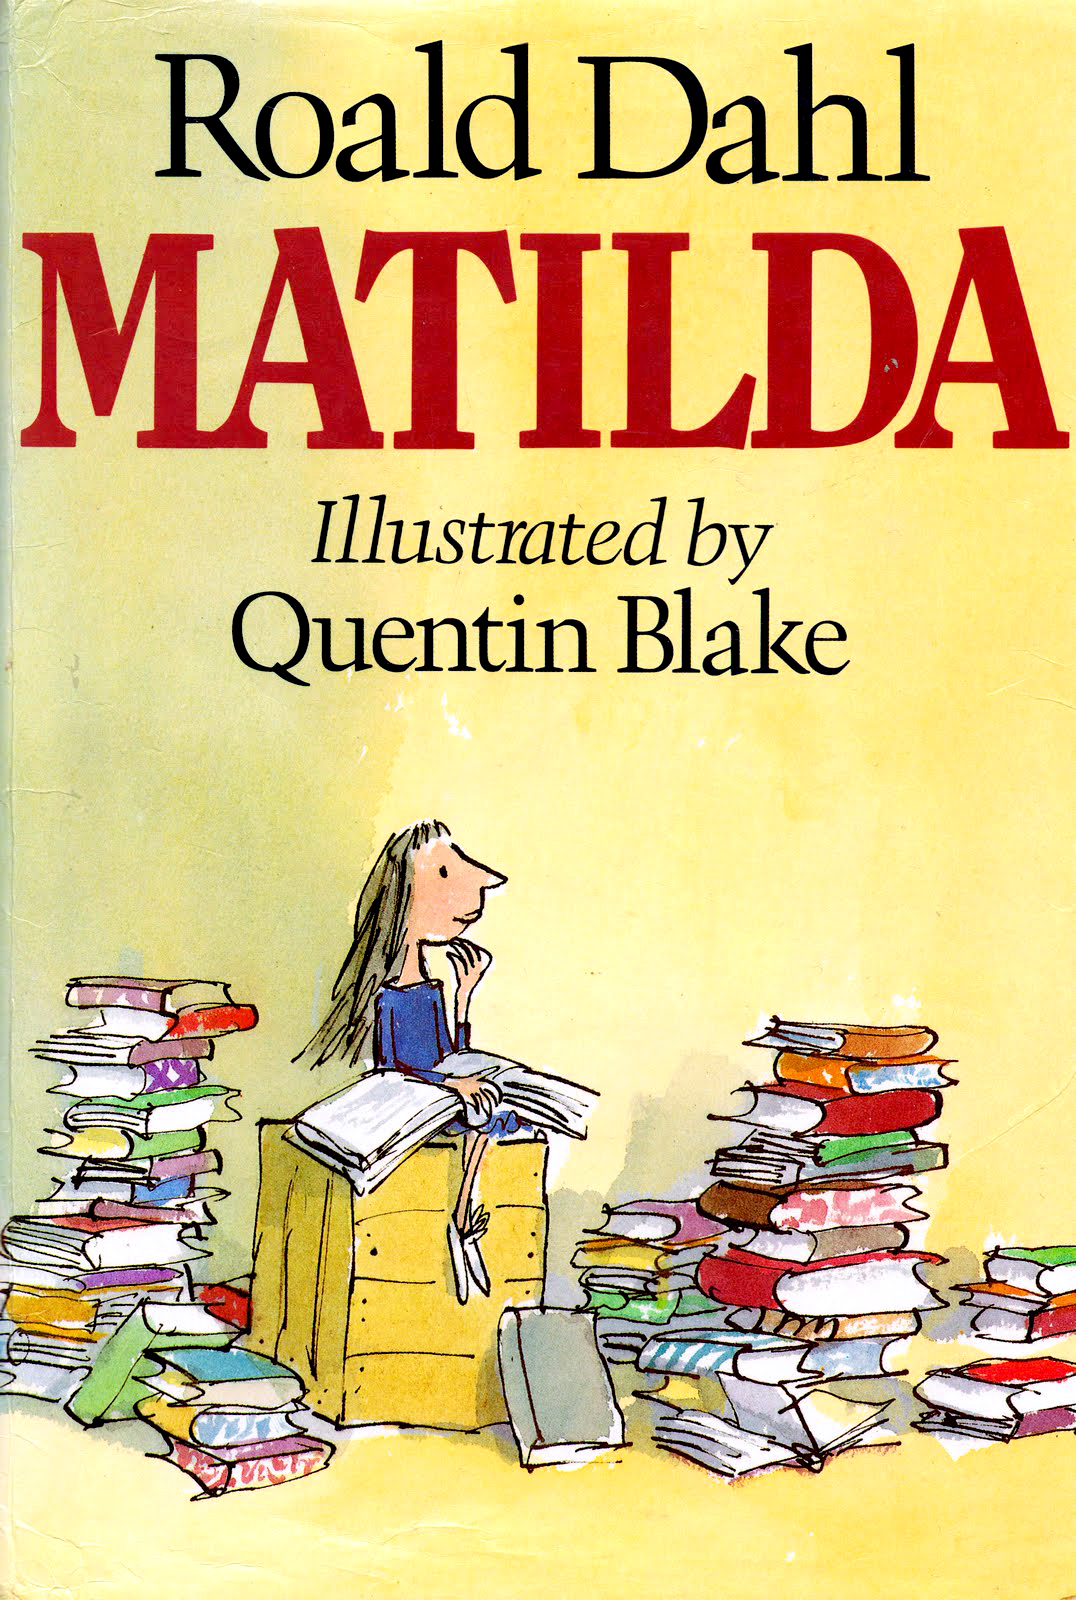 Image result for matilda cover